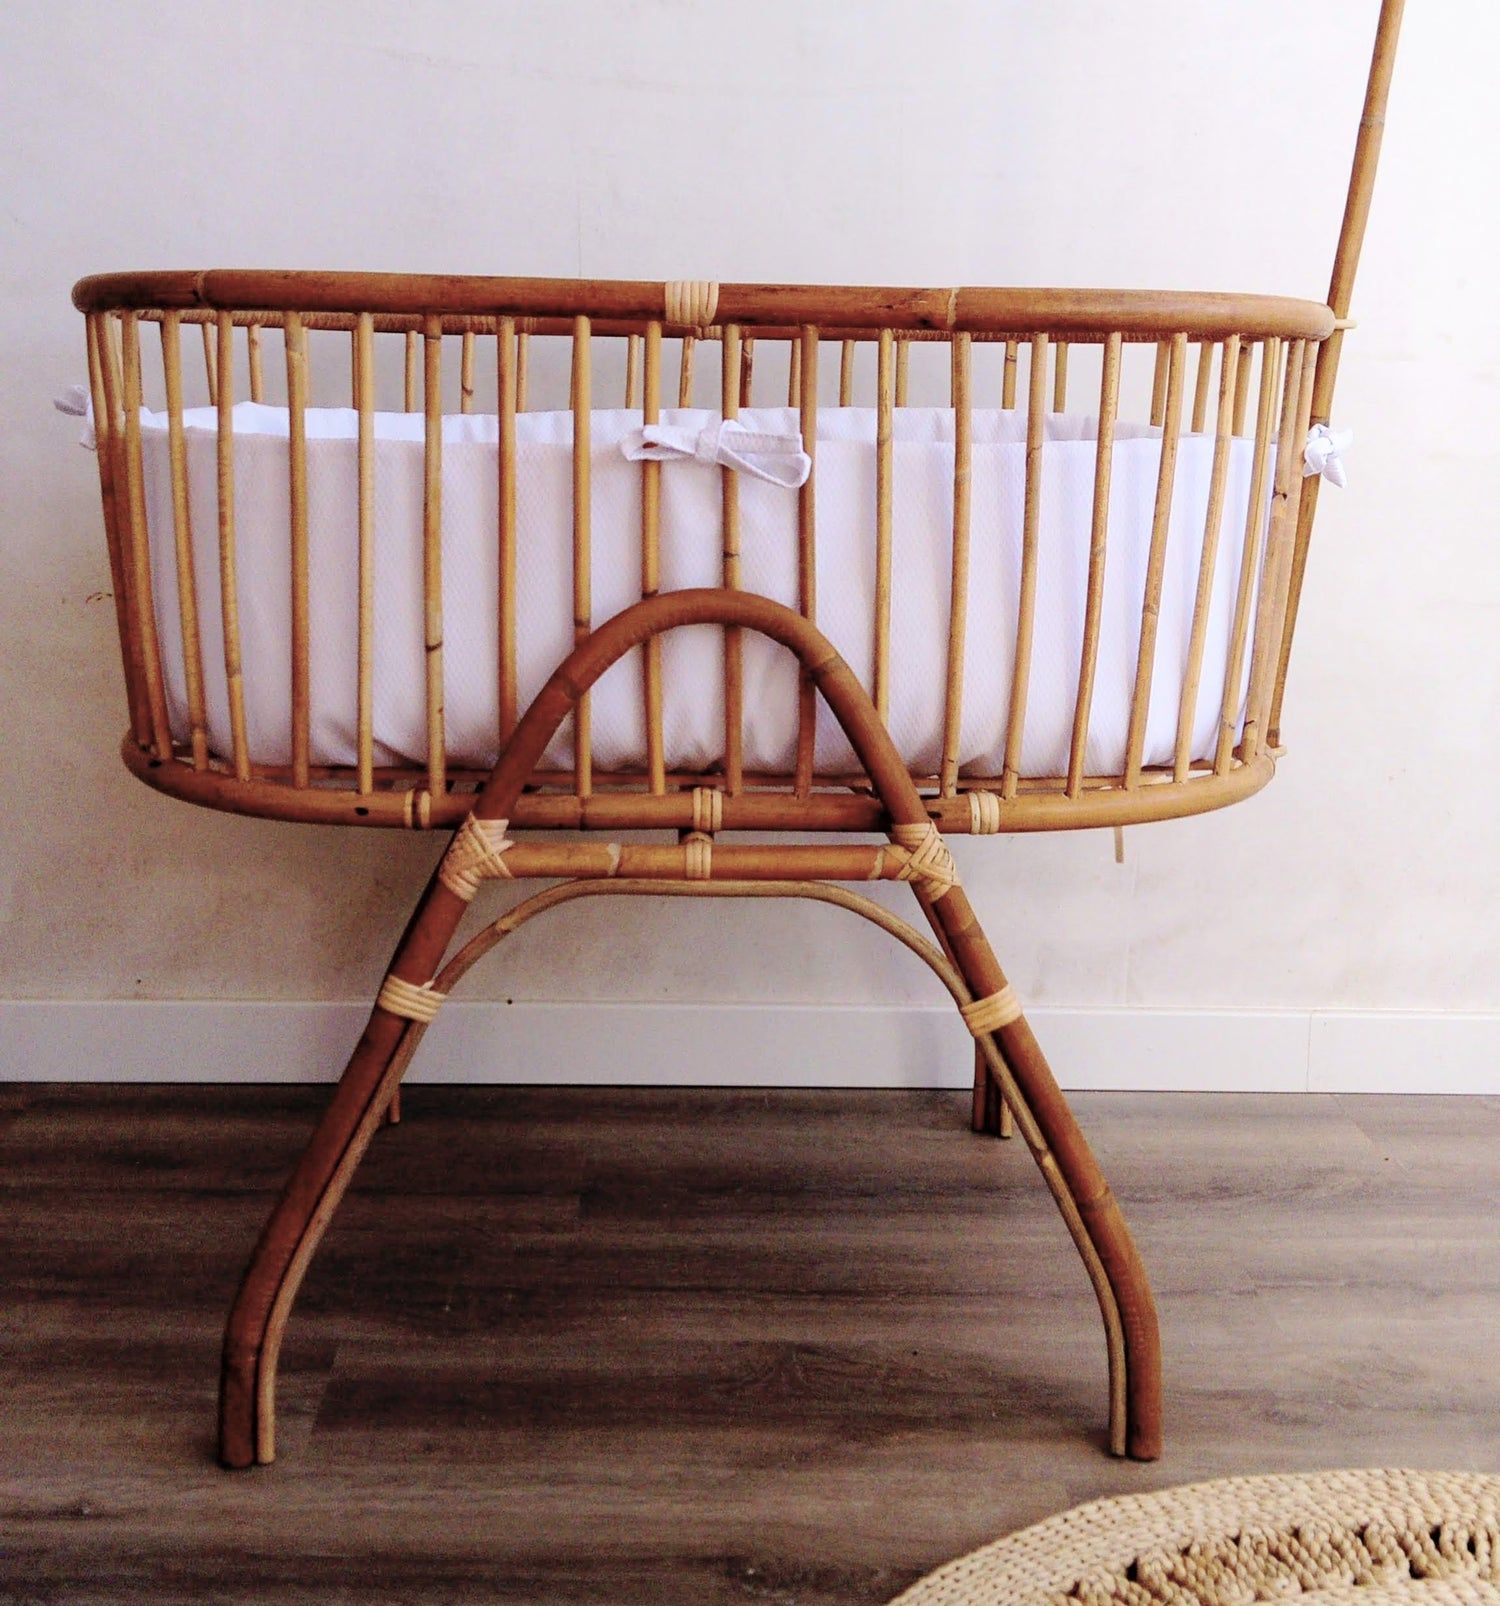 Image of Minicuna SCANDIC (desde 230€ sin dosel)